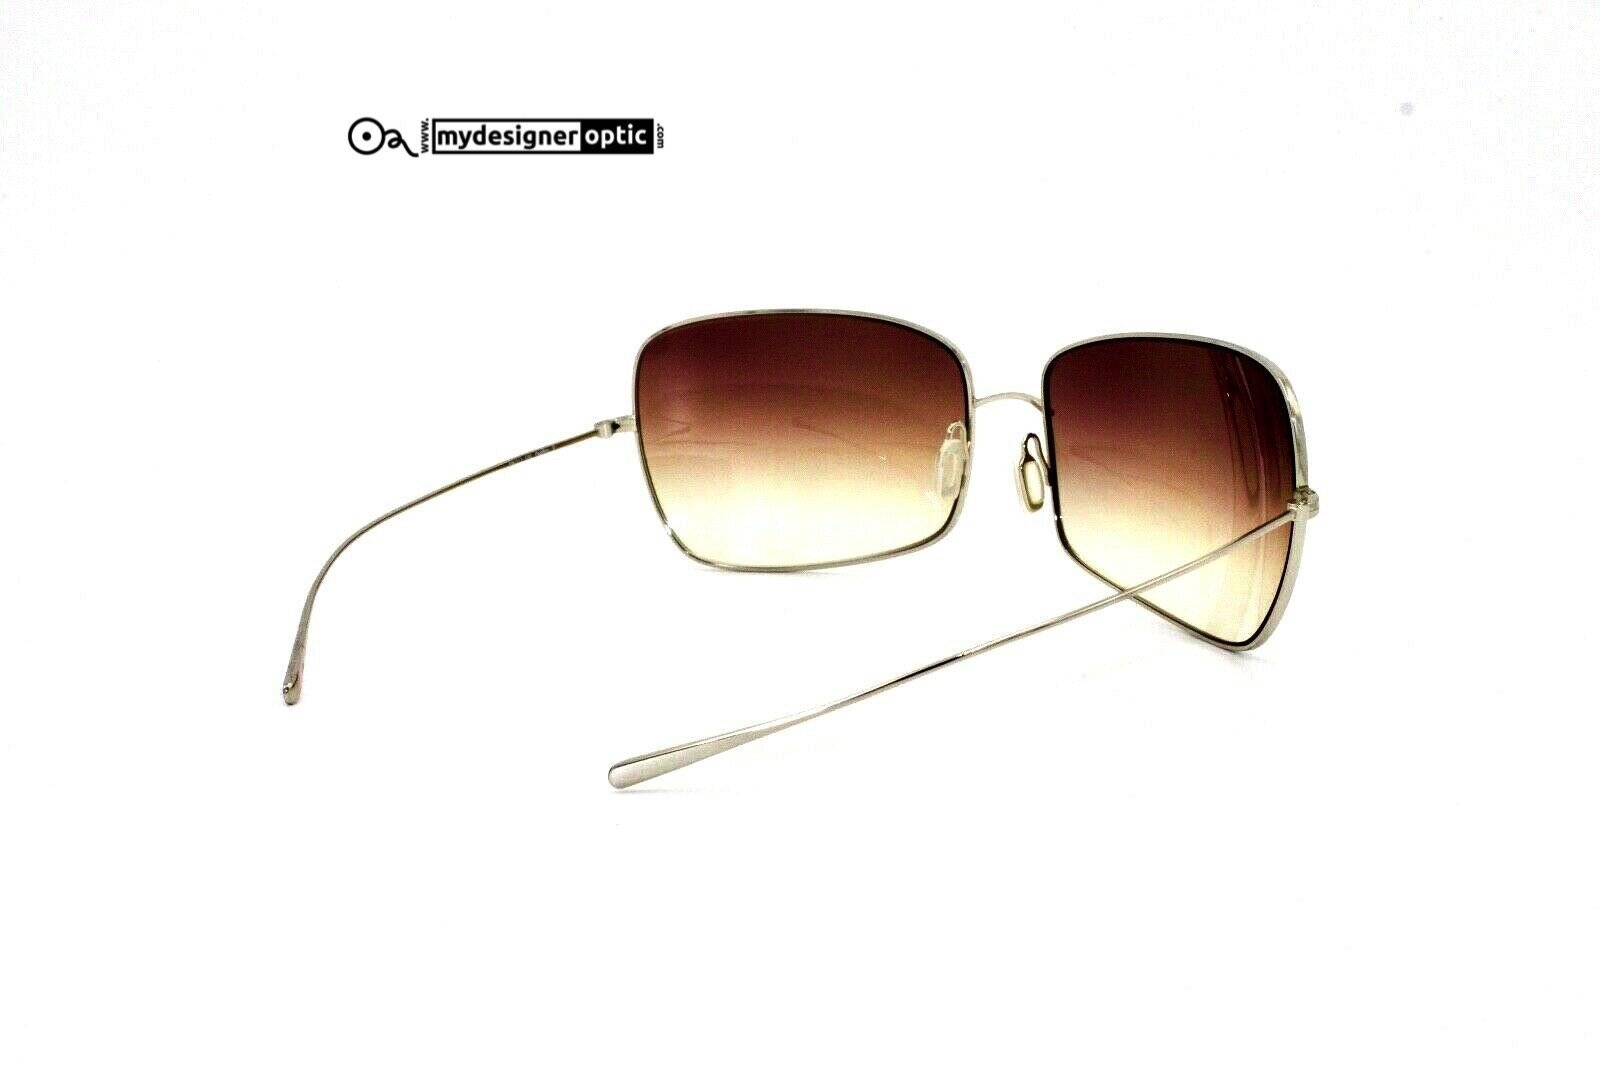 Oliver Peoples Sunglasses Papillon S 66-17-120 Made in Japan - Mydesigneroptic